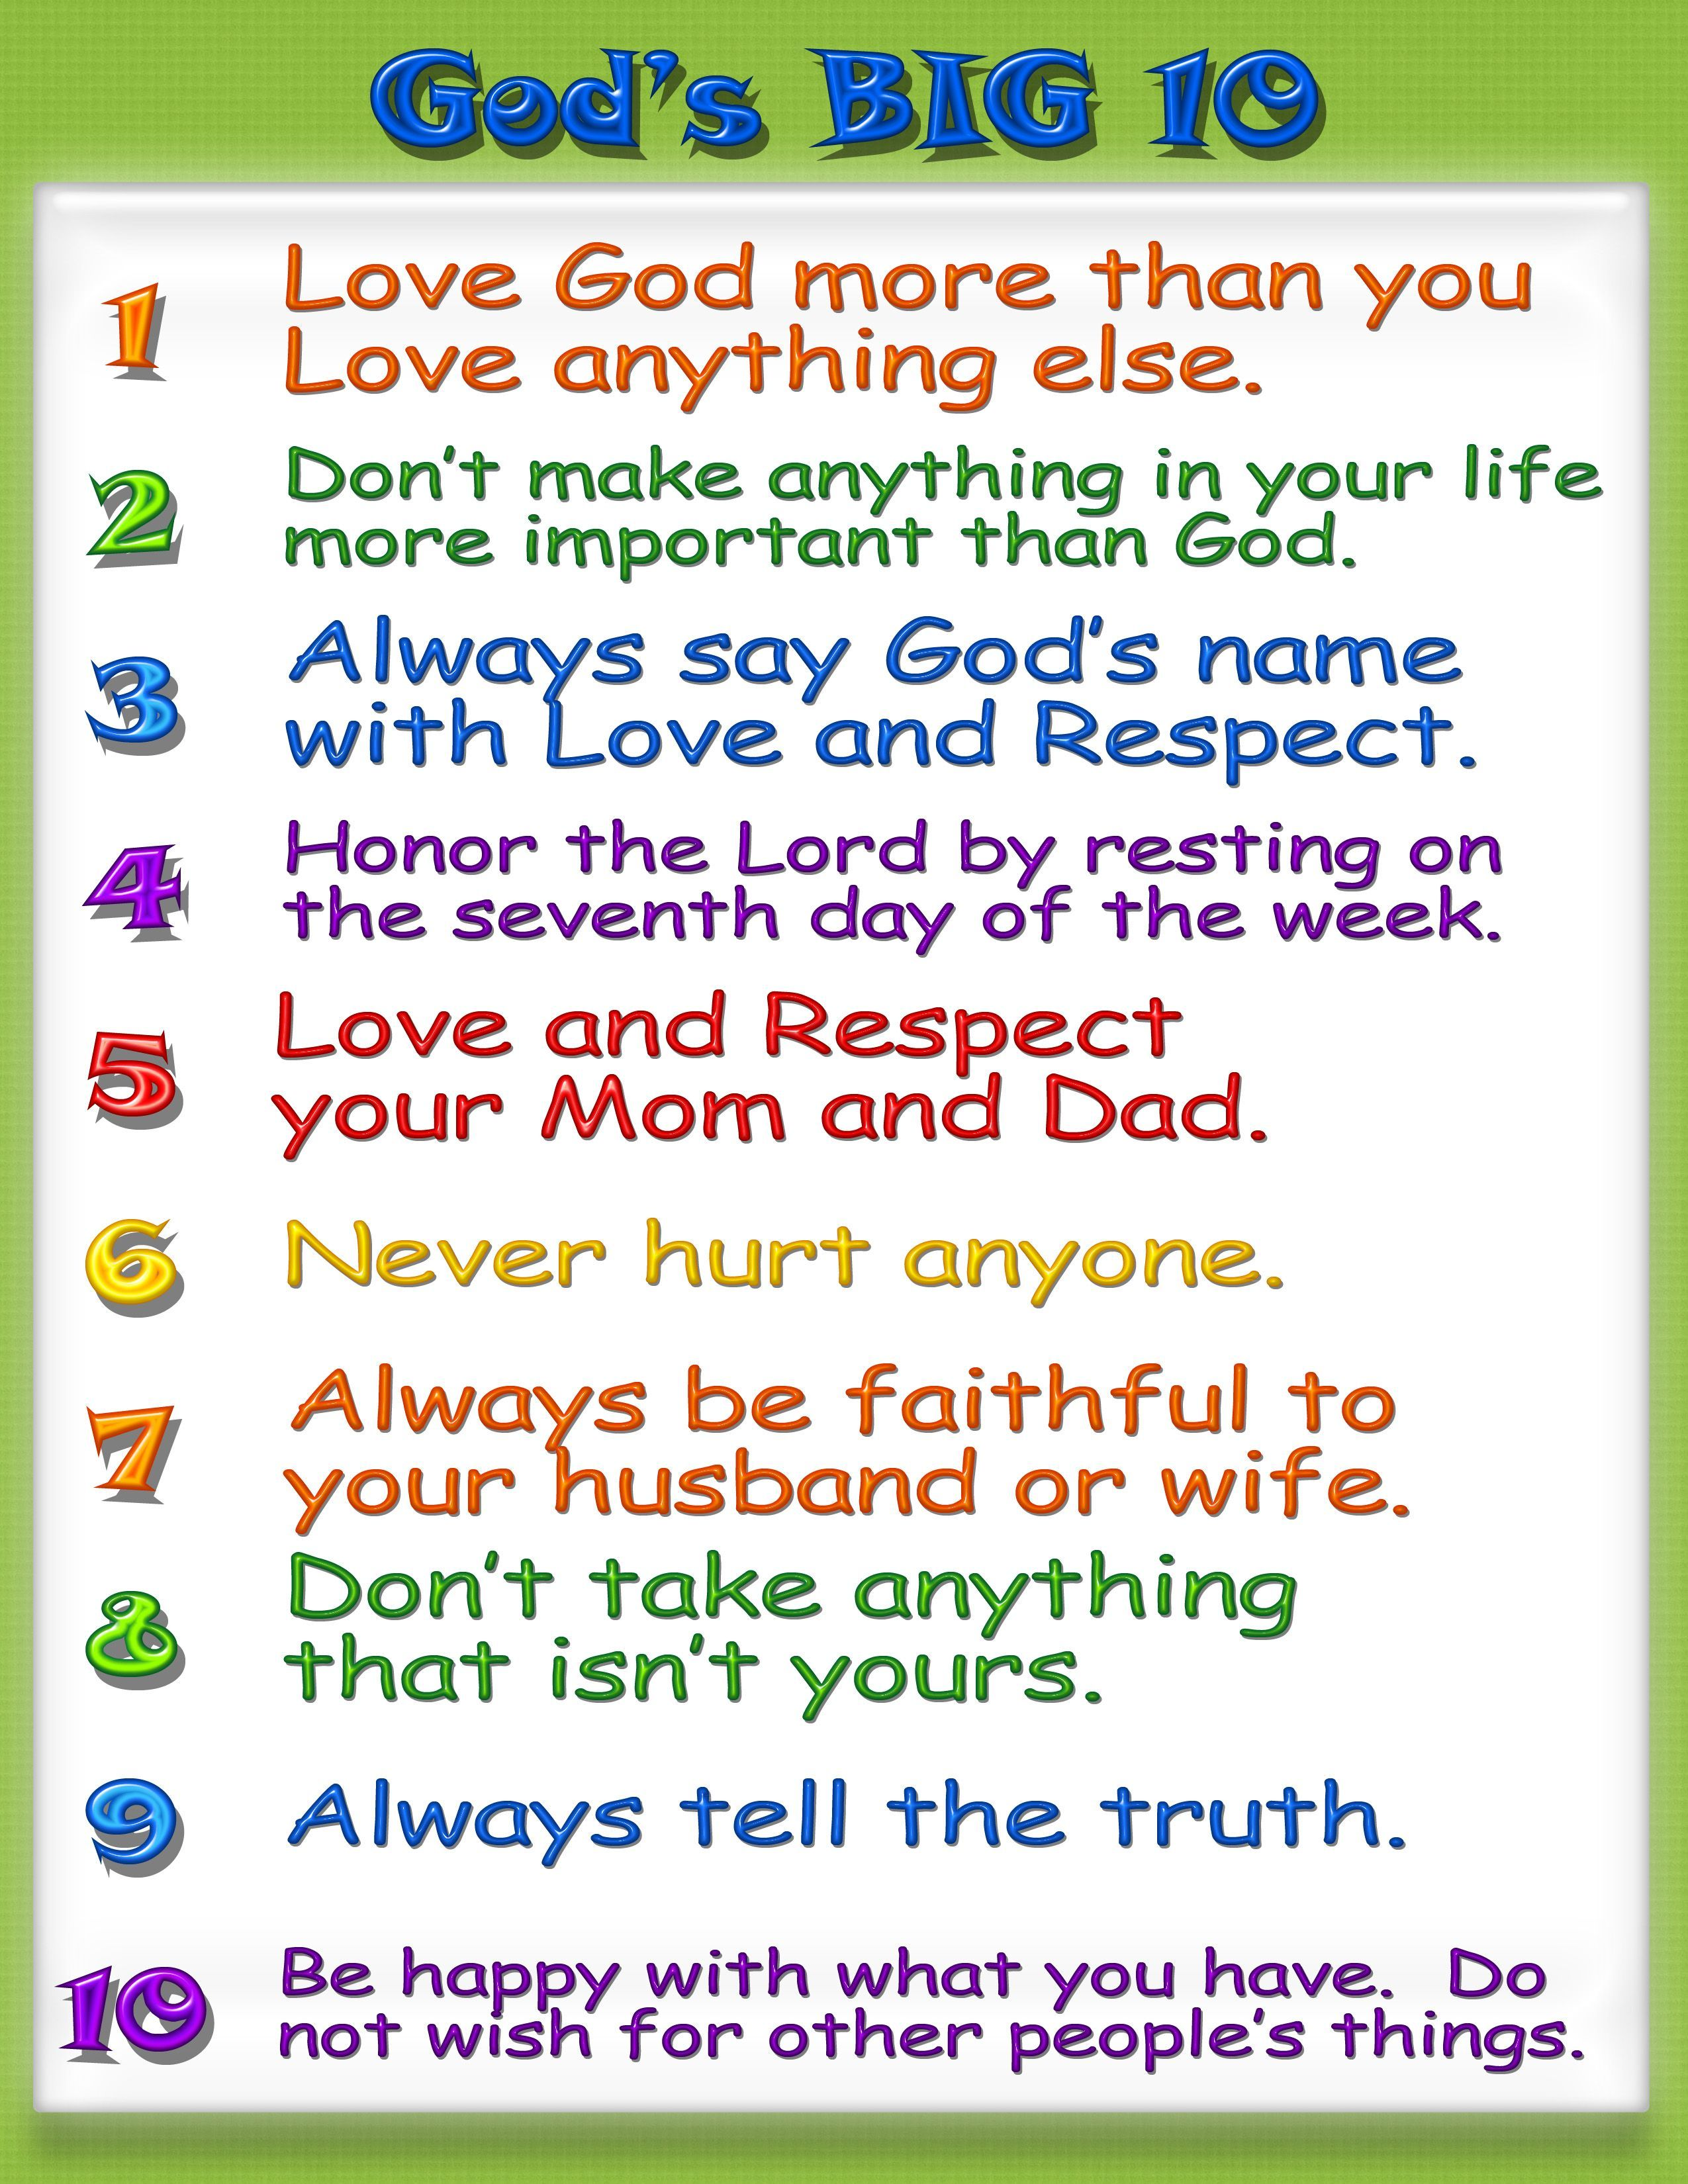 Kid Friendly Ten Commandments The 10 Commandments Were Given To Moses Bible Lessons For Kids Sunday School Lessons Bible Study For Kids